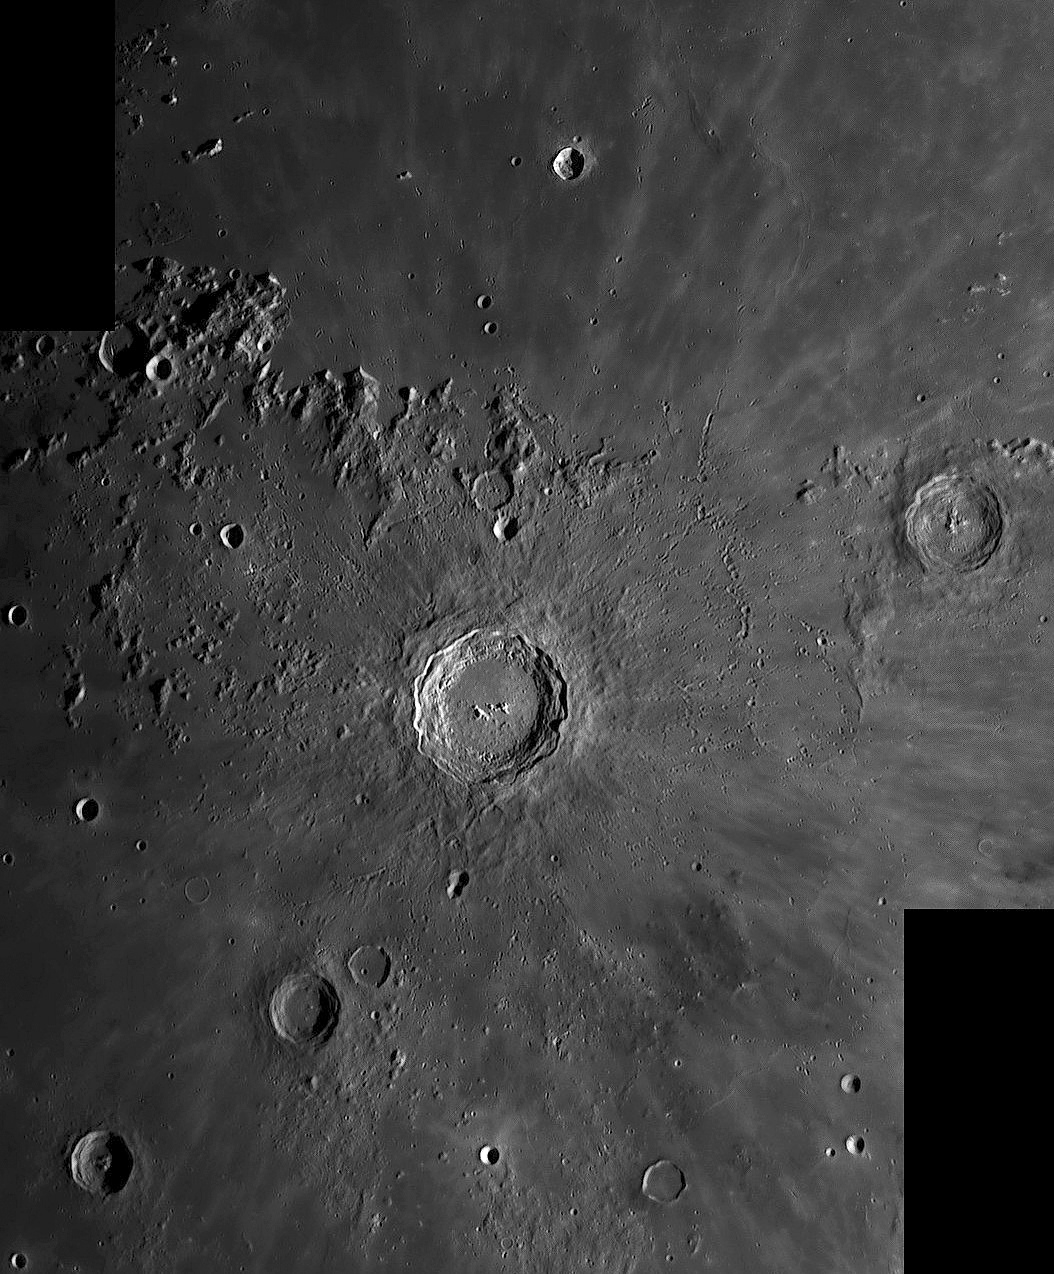 Billialdus Moon_060417_ZWO ASI120MM_Gain=58_Exposure=1 (2) - Copie.jpg